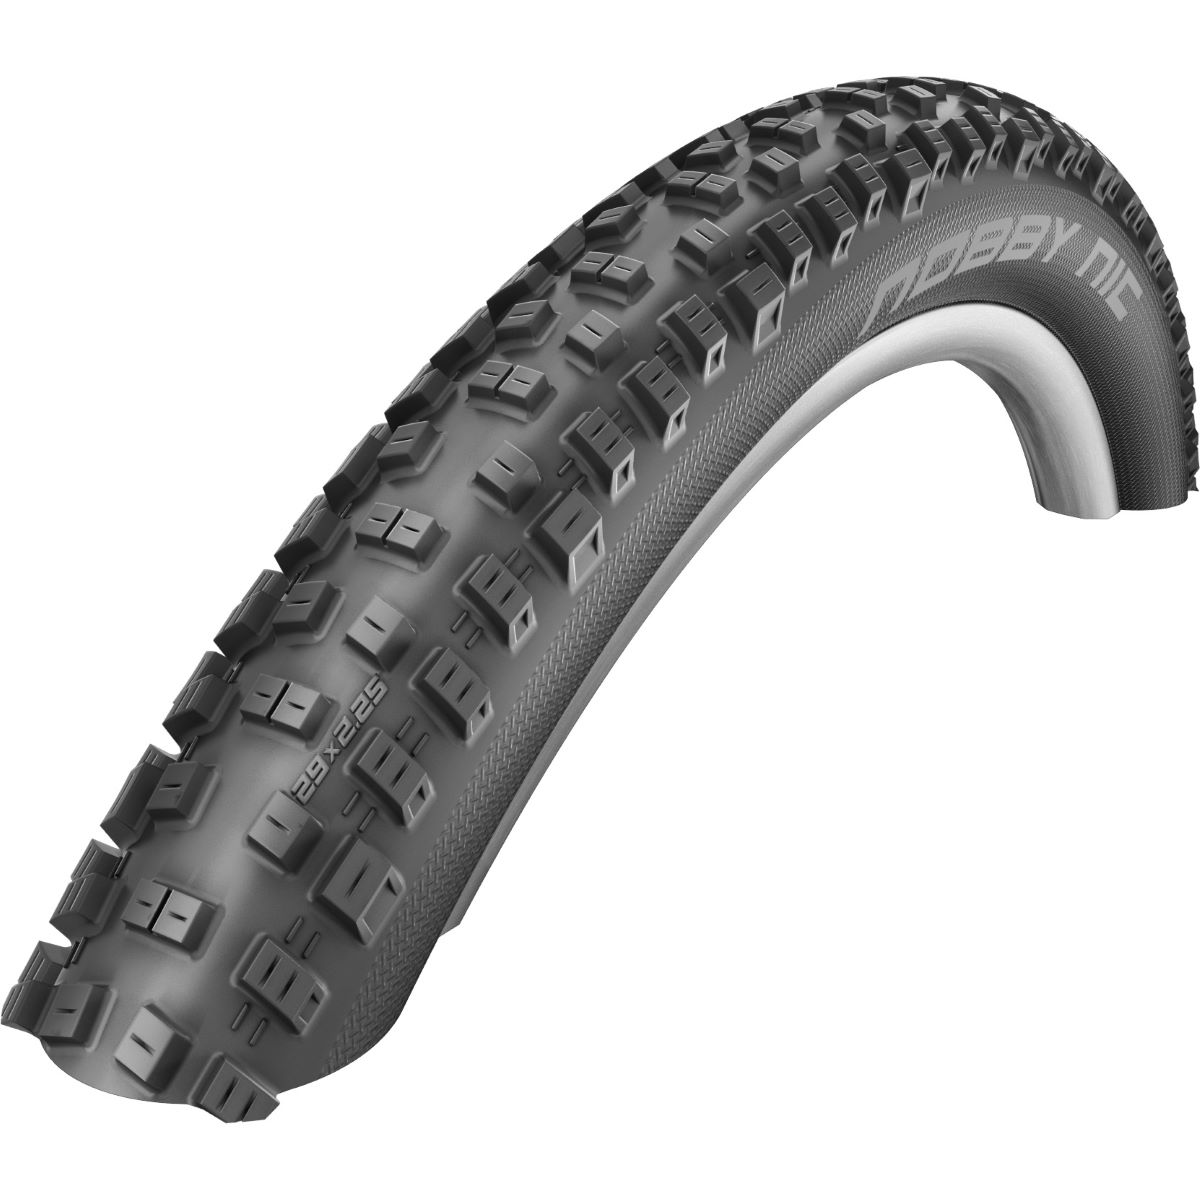 Pneu VTT Schwalbe Nobby Nic Performance DD - 26' 2.35' Folding Be